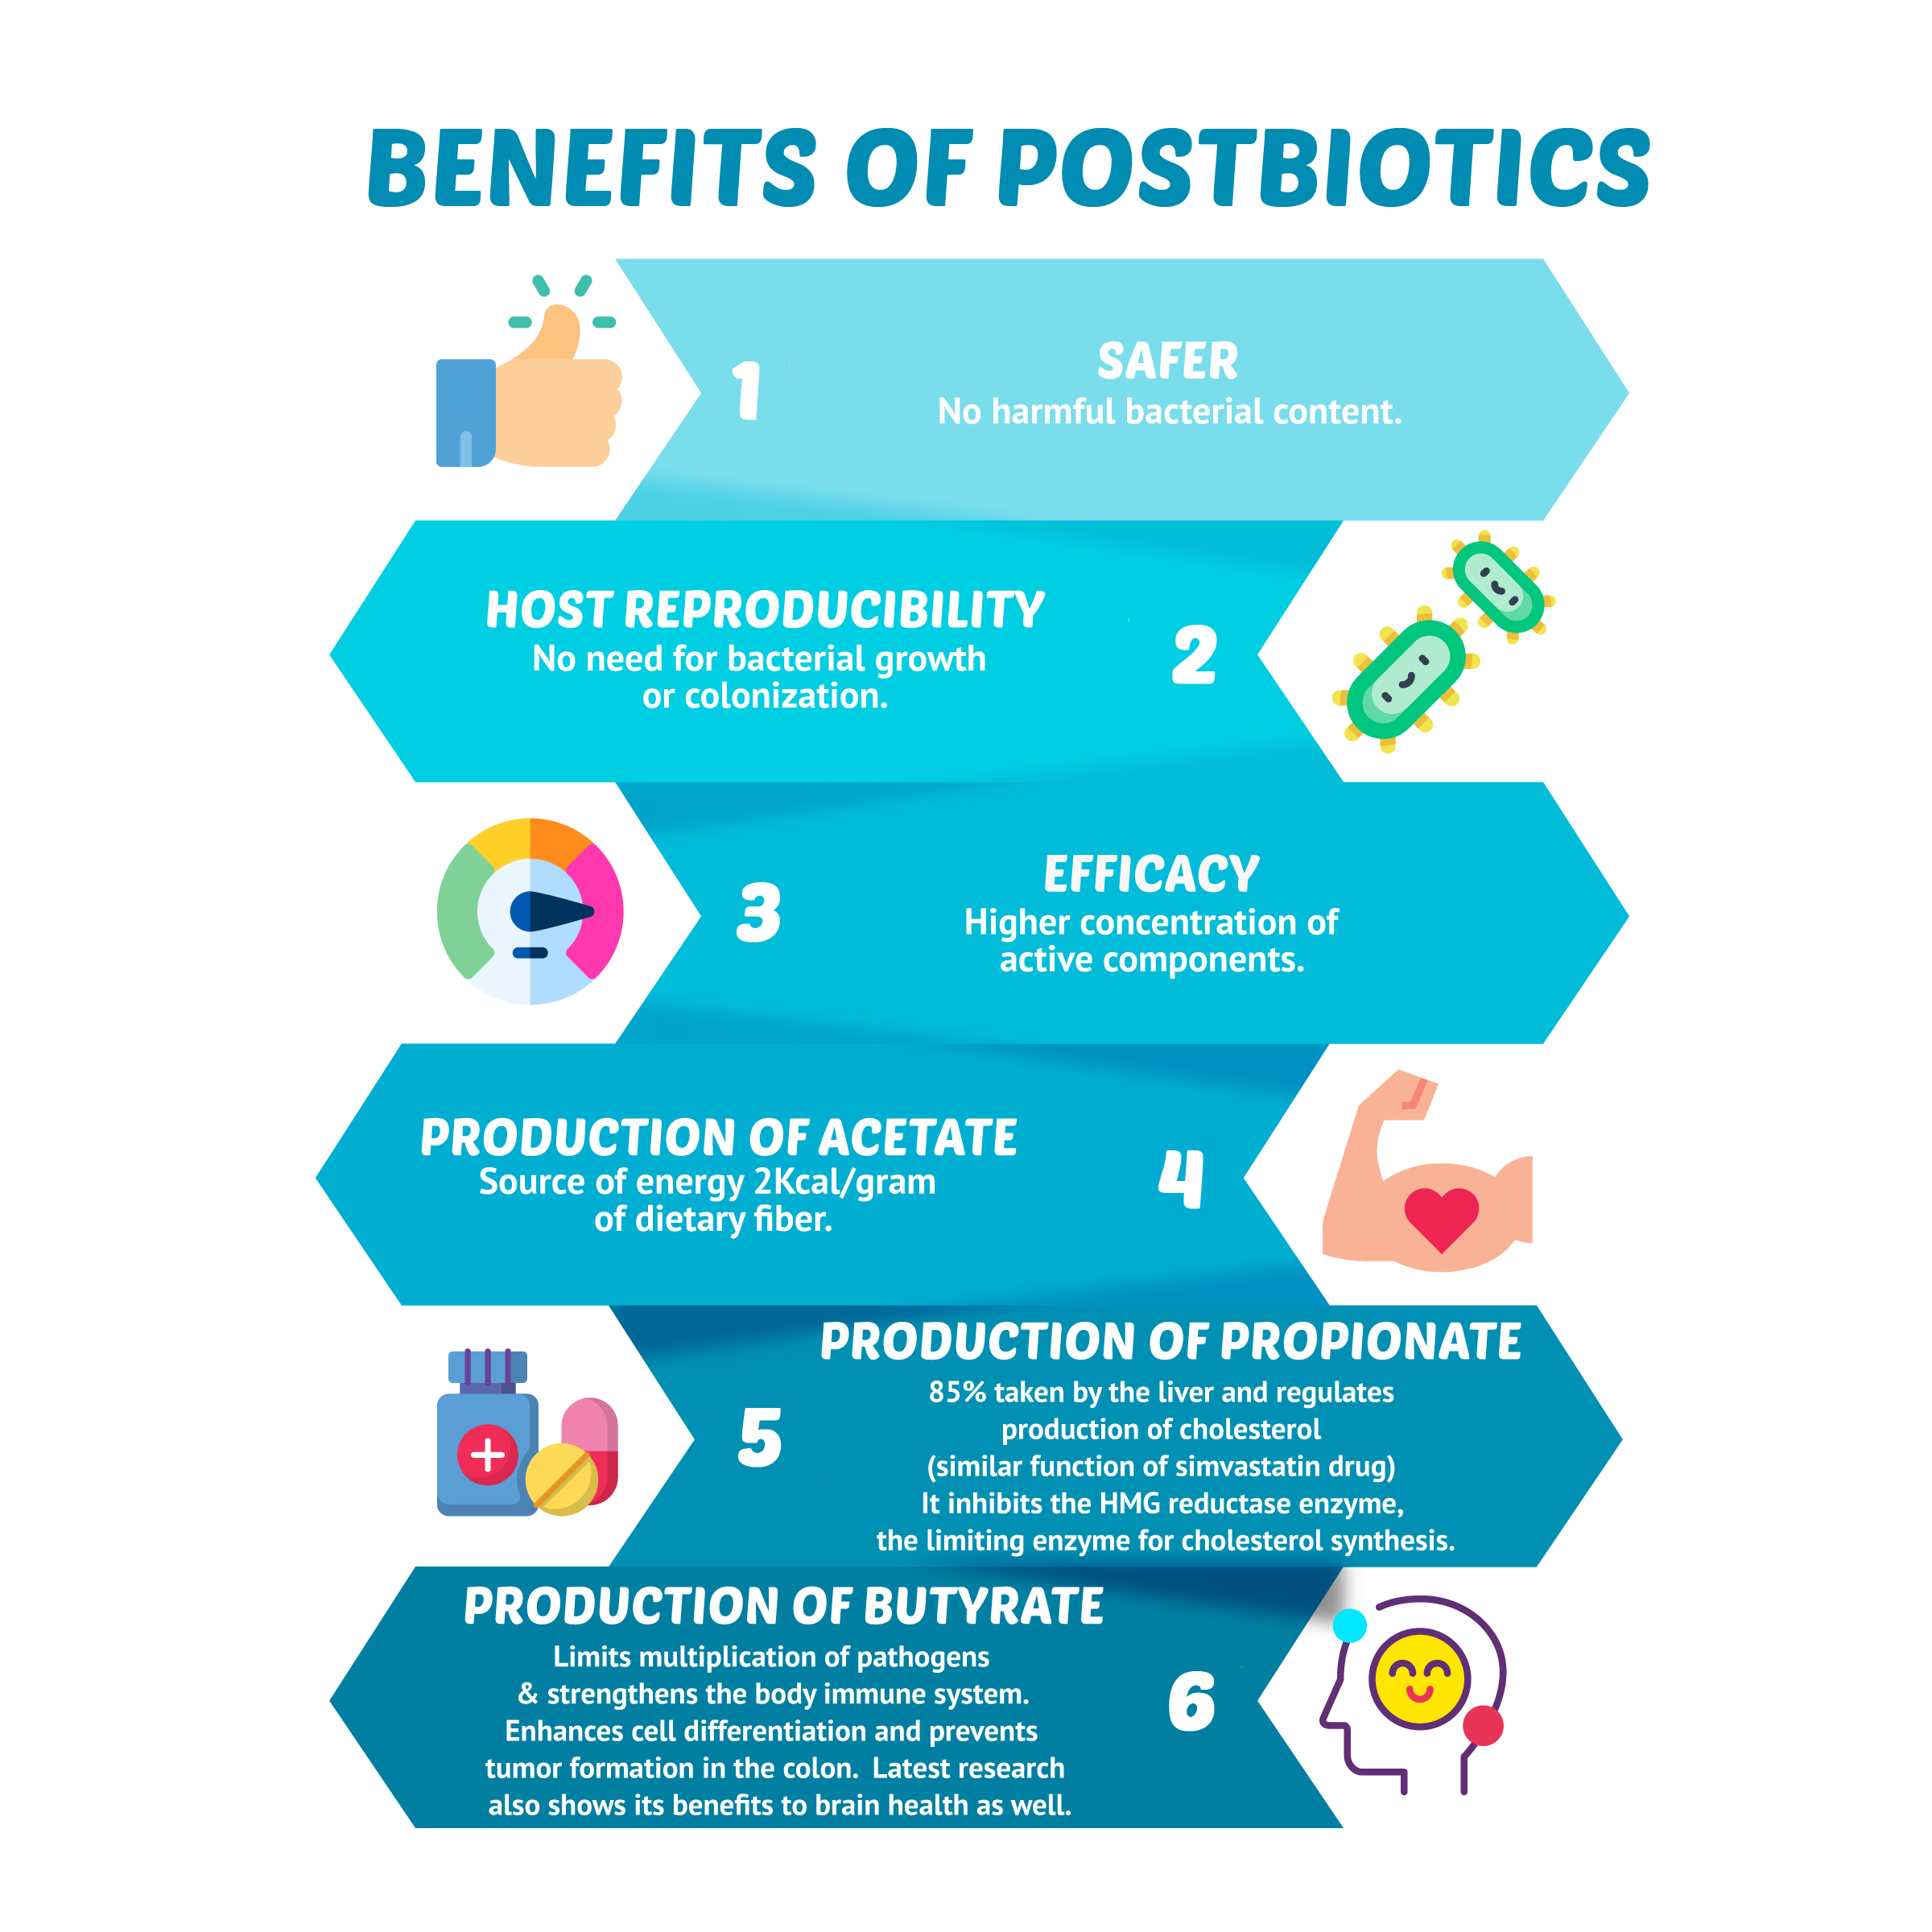 benefits of postbiotics